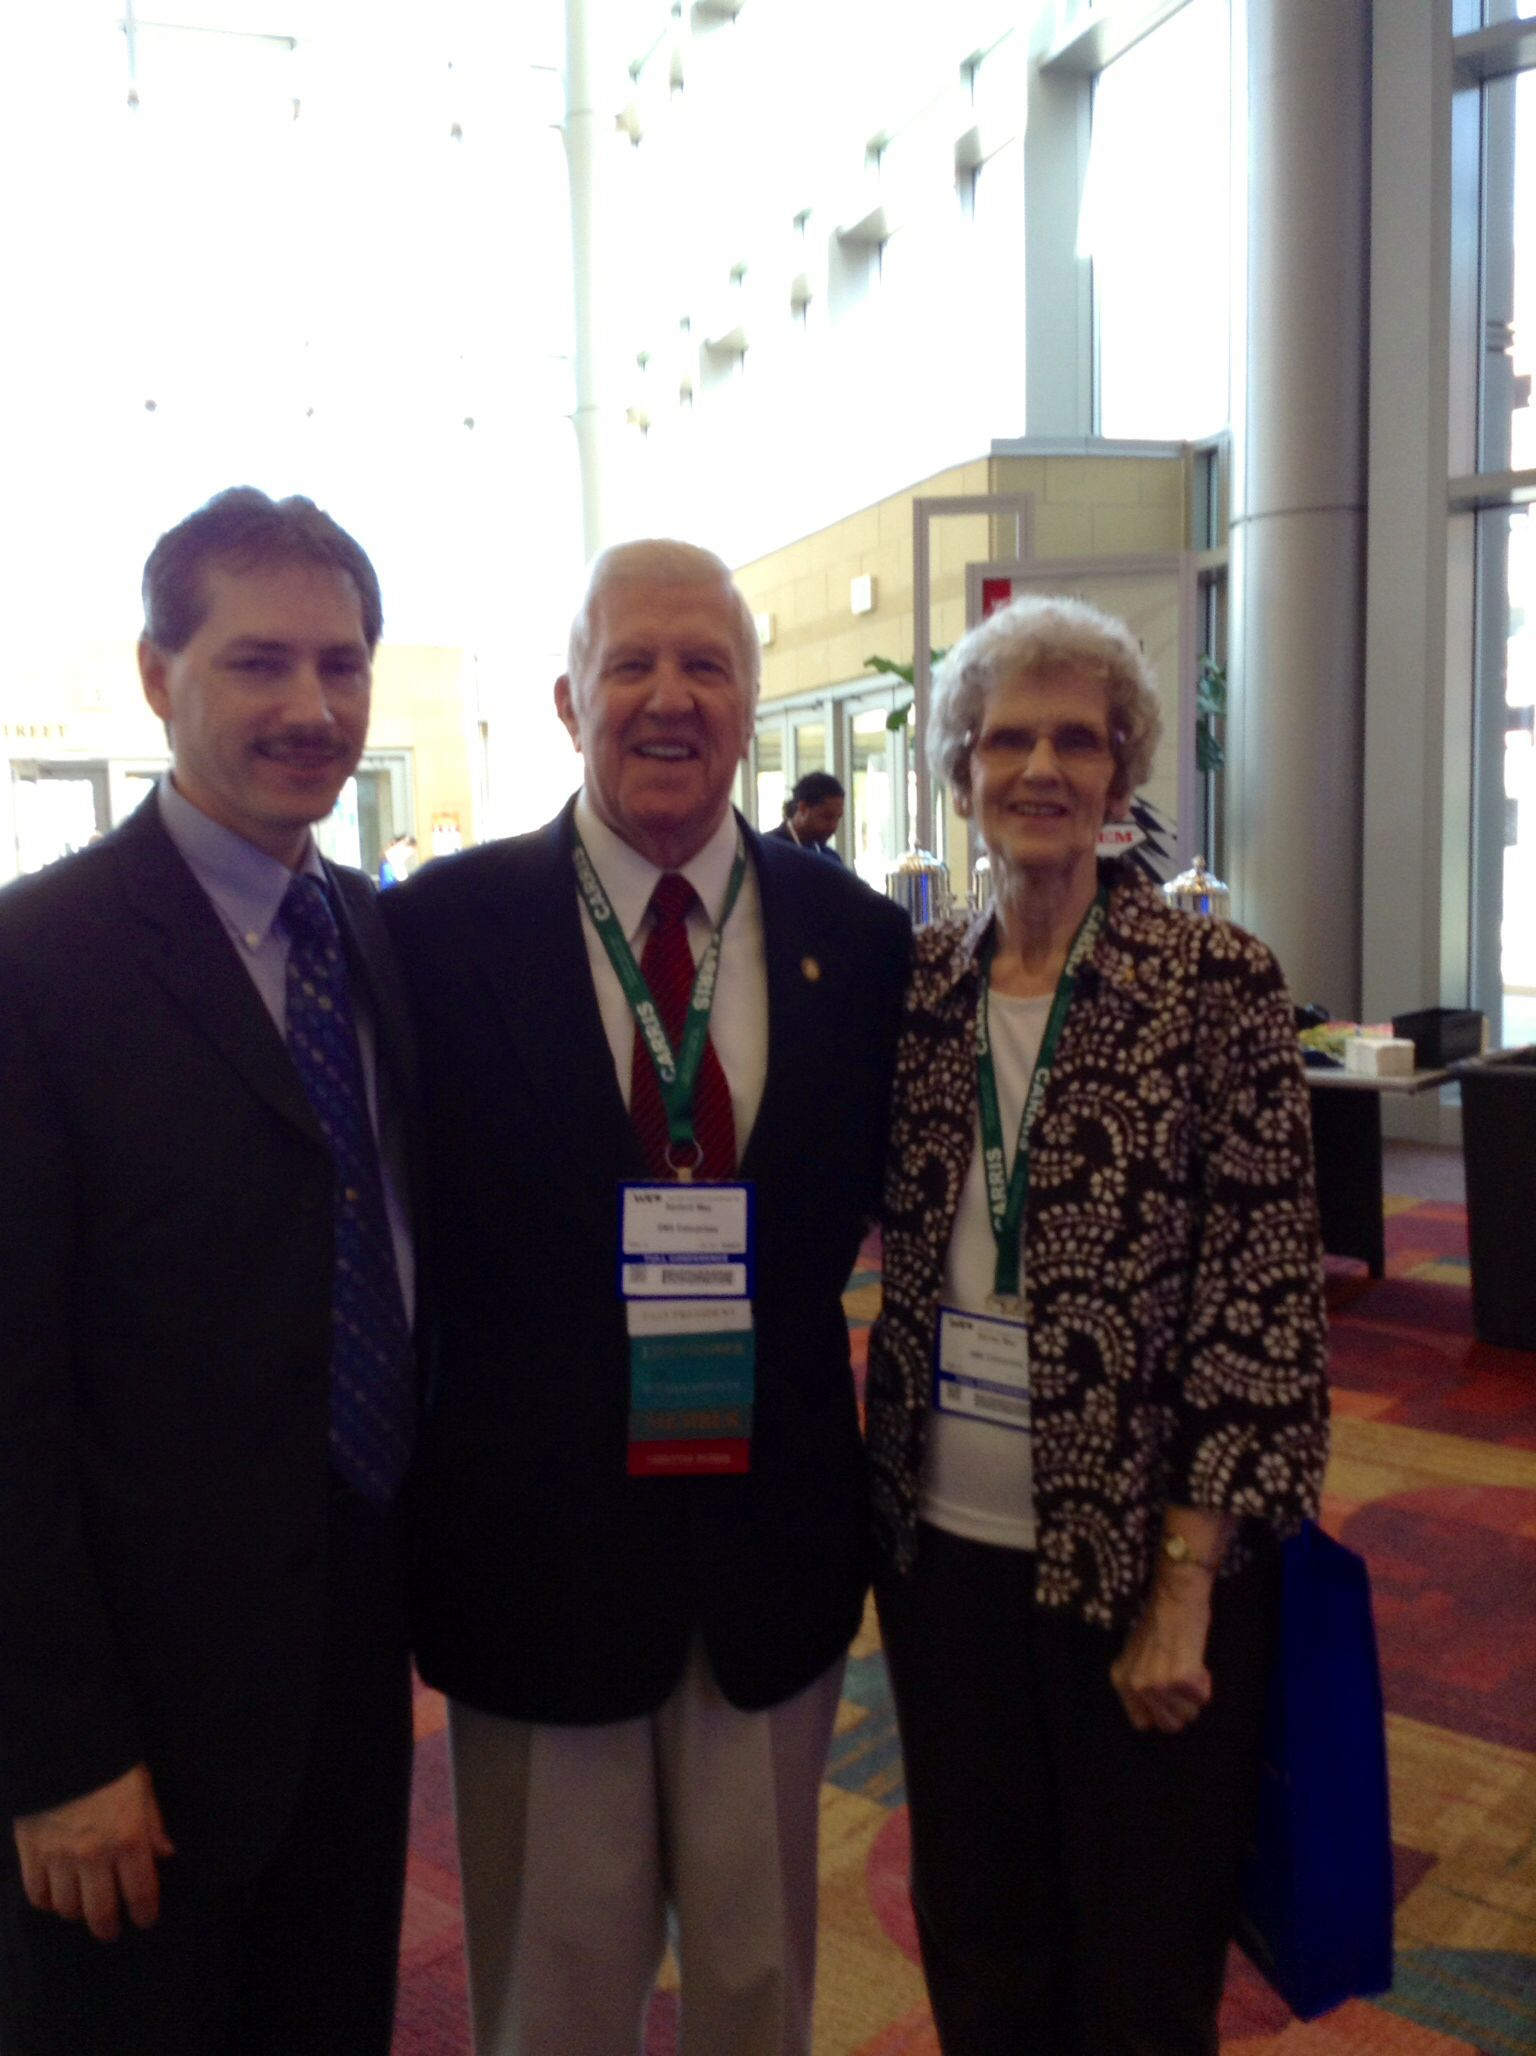 Information Tech Chuck Szymaszek with past President and Council member Sanford May and wife Shirley